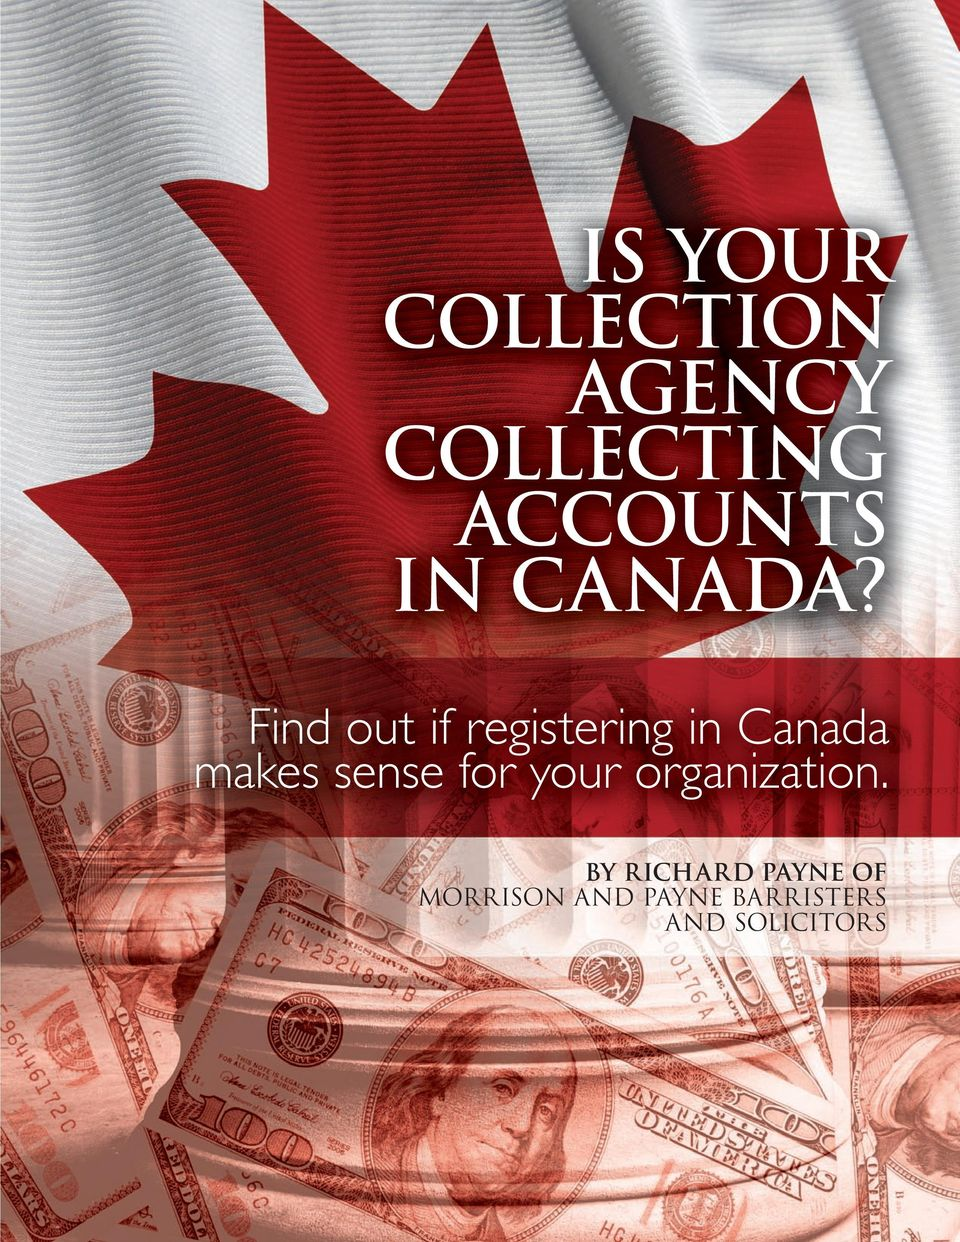 find out if registering in Canada makes sense